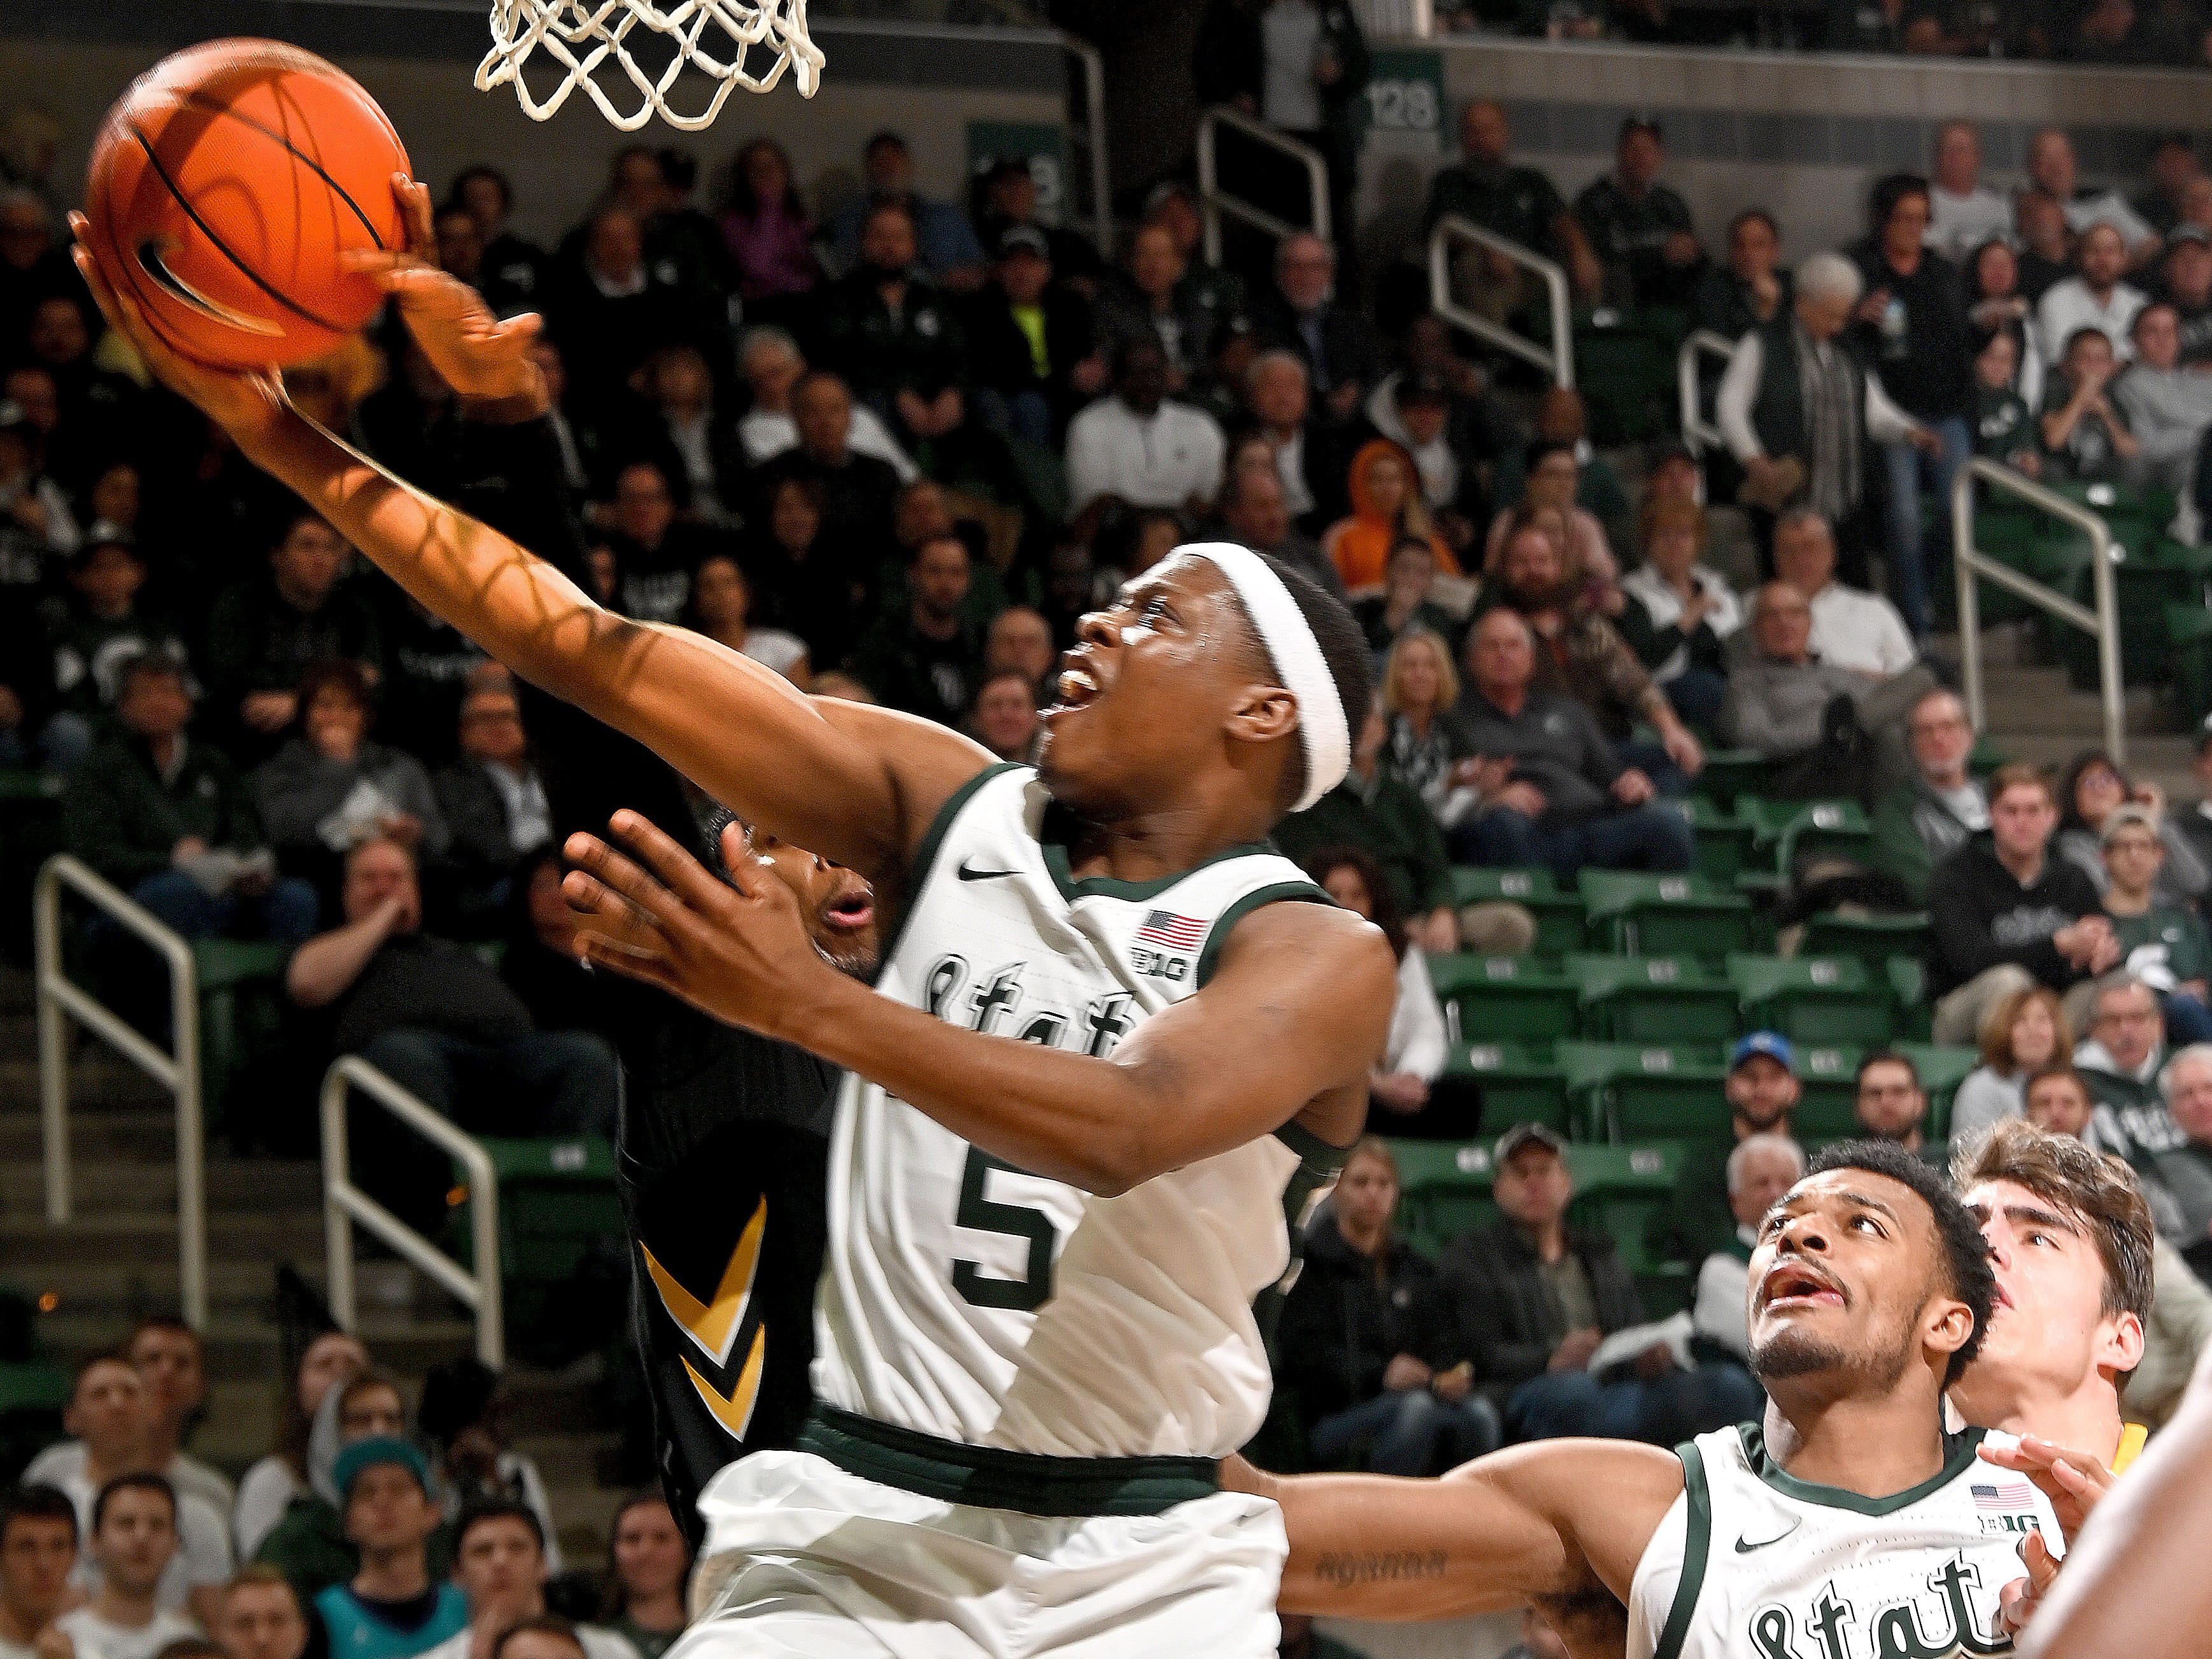 Cassius Winston slashes to the basket in the first half as MSU beats Iowa 90-68, at Breslin Center in East Lansing, Monday night, December 03, 2018.